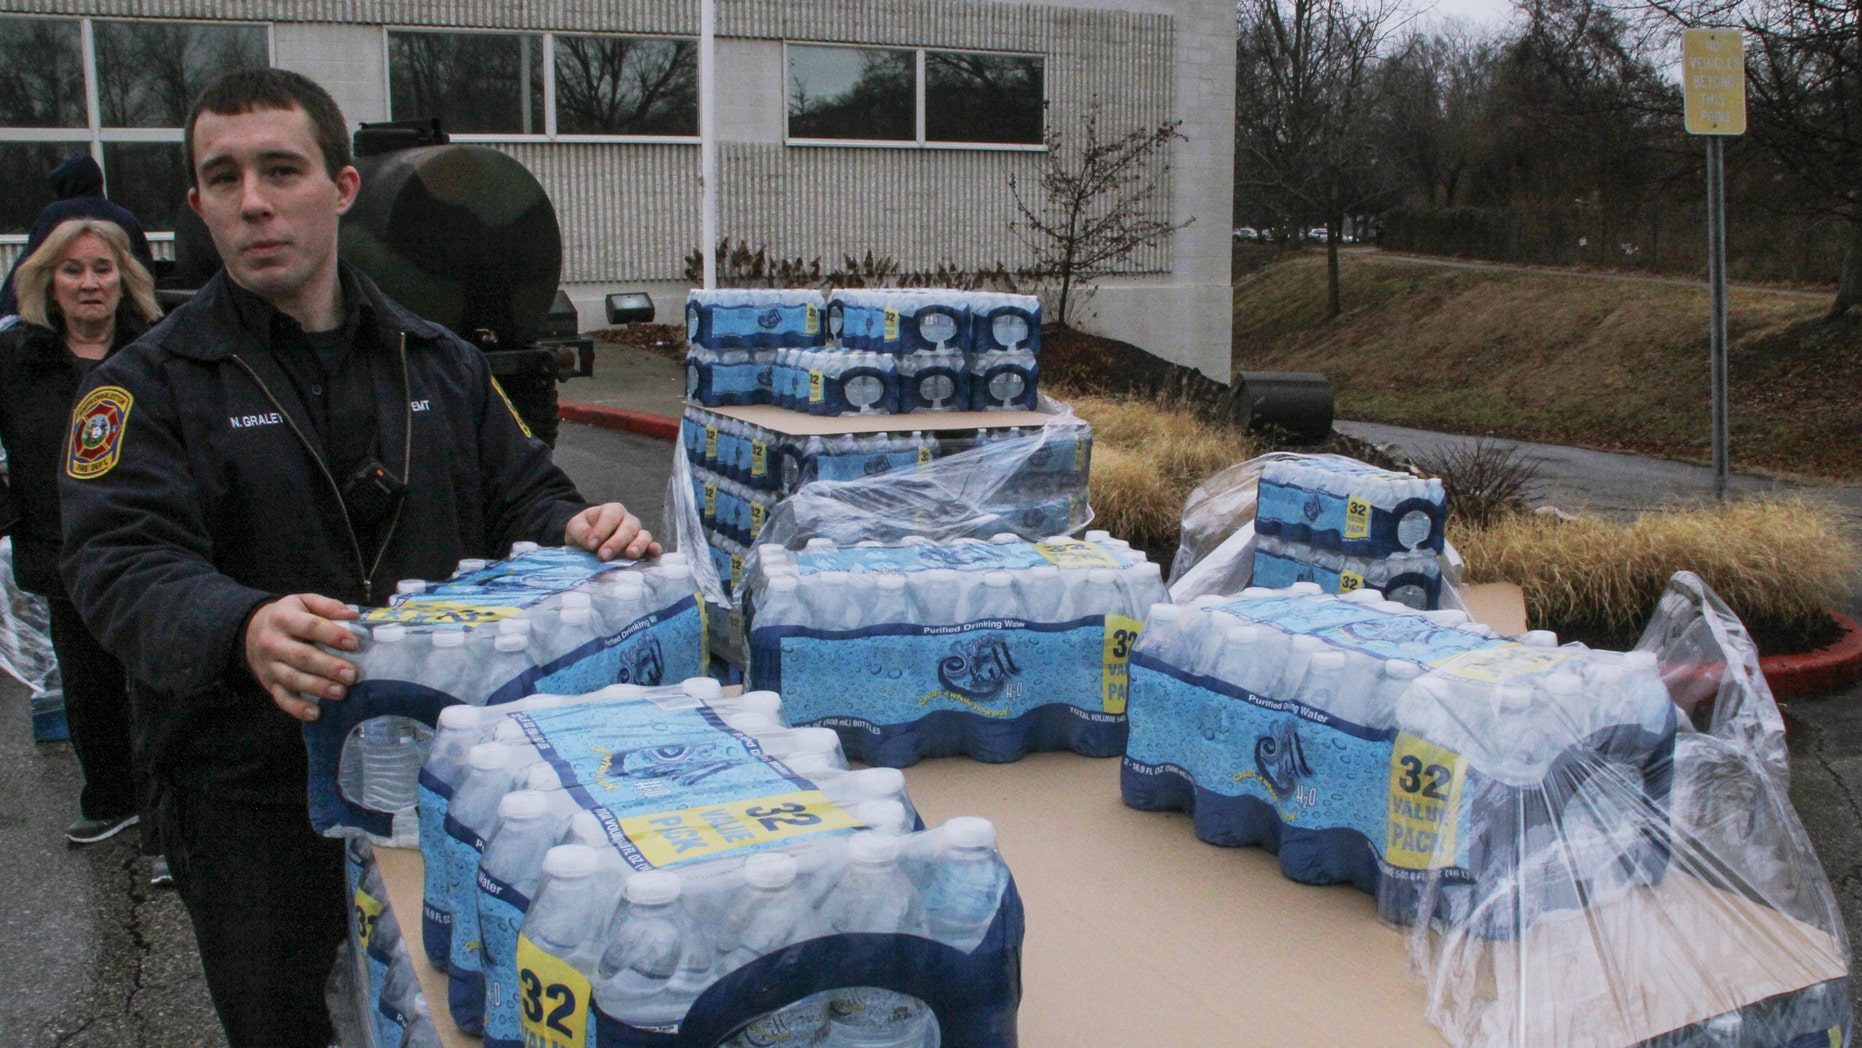 Water is distributed to residents at the South Charleston Community Center in Charleston, West Virginia, January 10, 2014. (REUTERS/Lisa Hechesky)